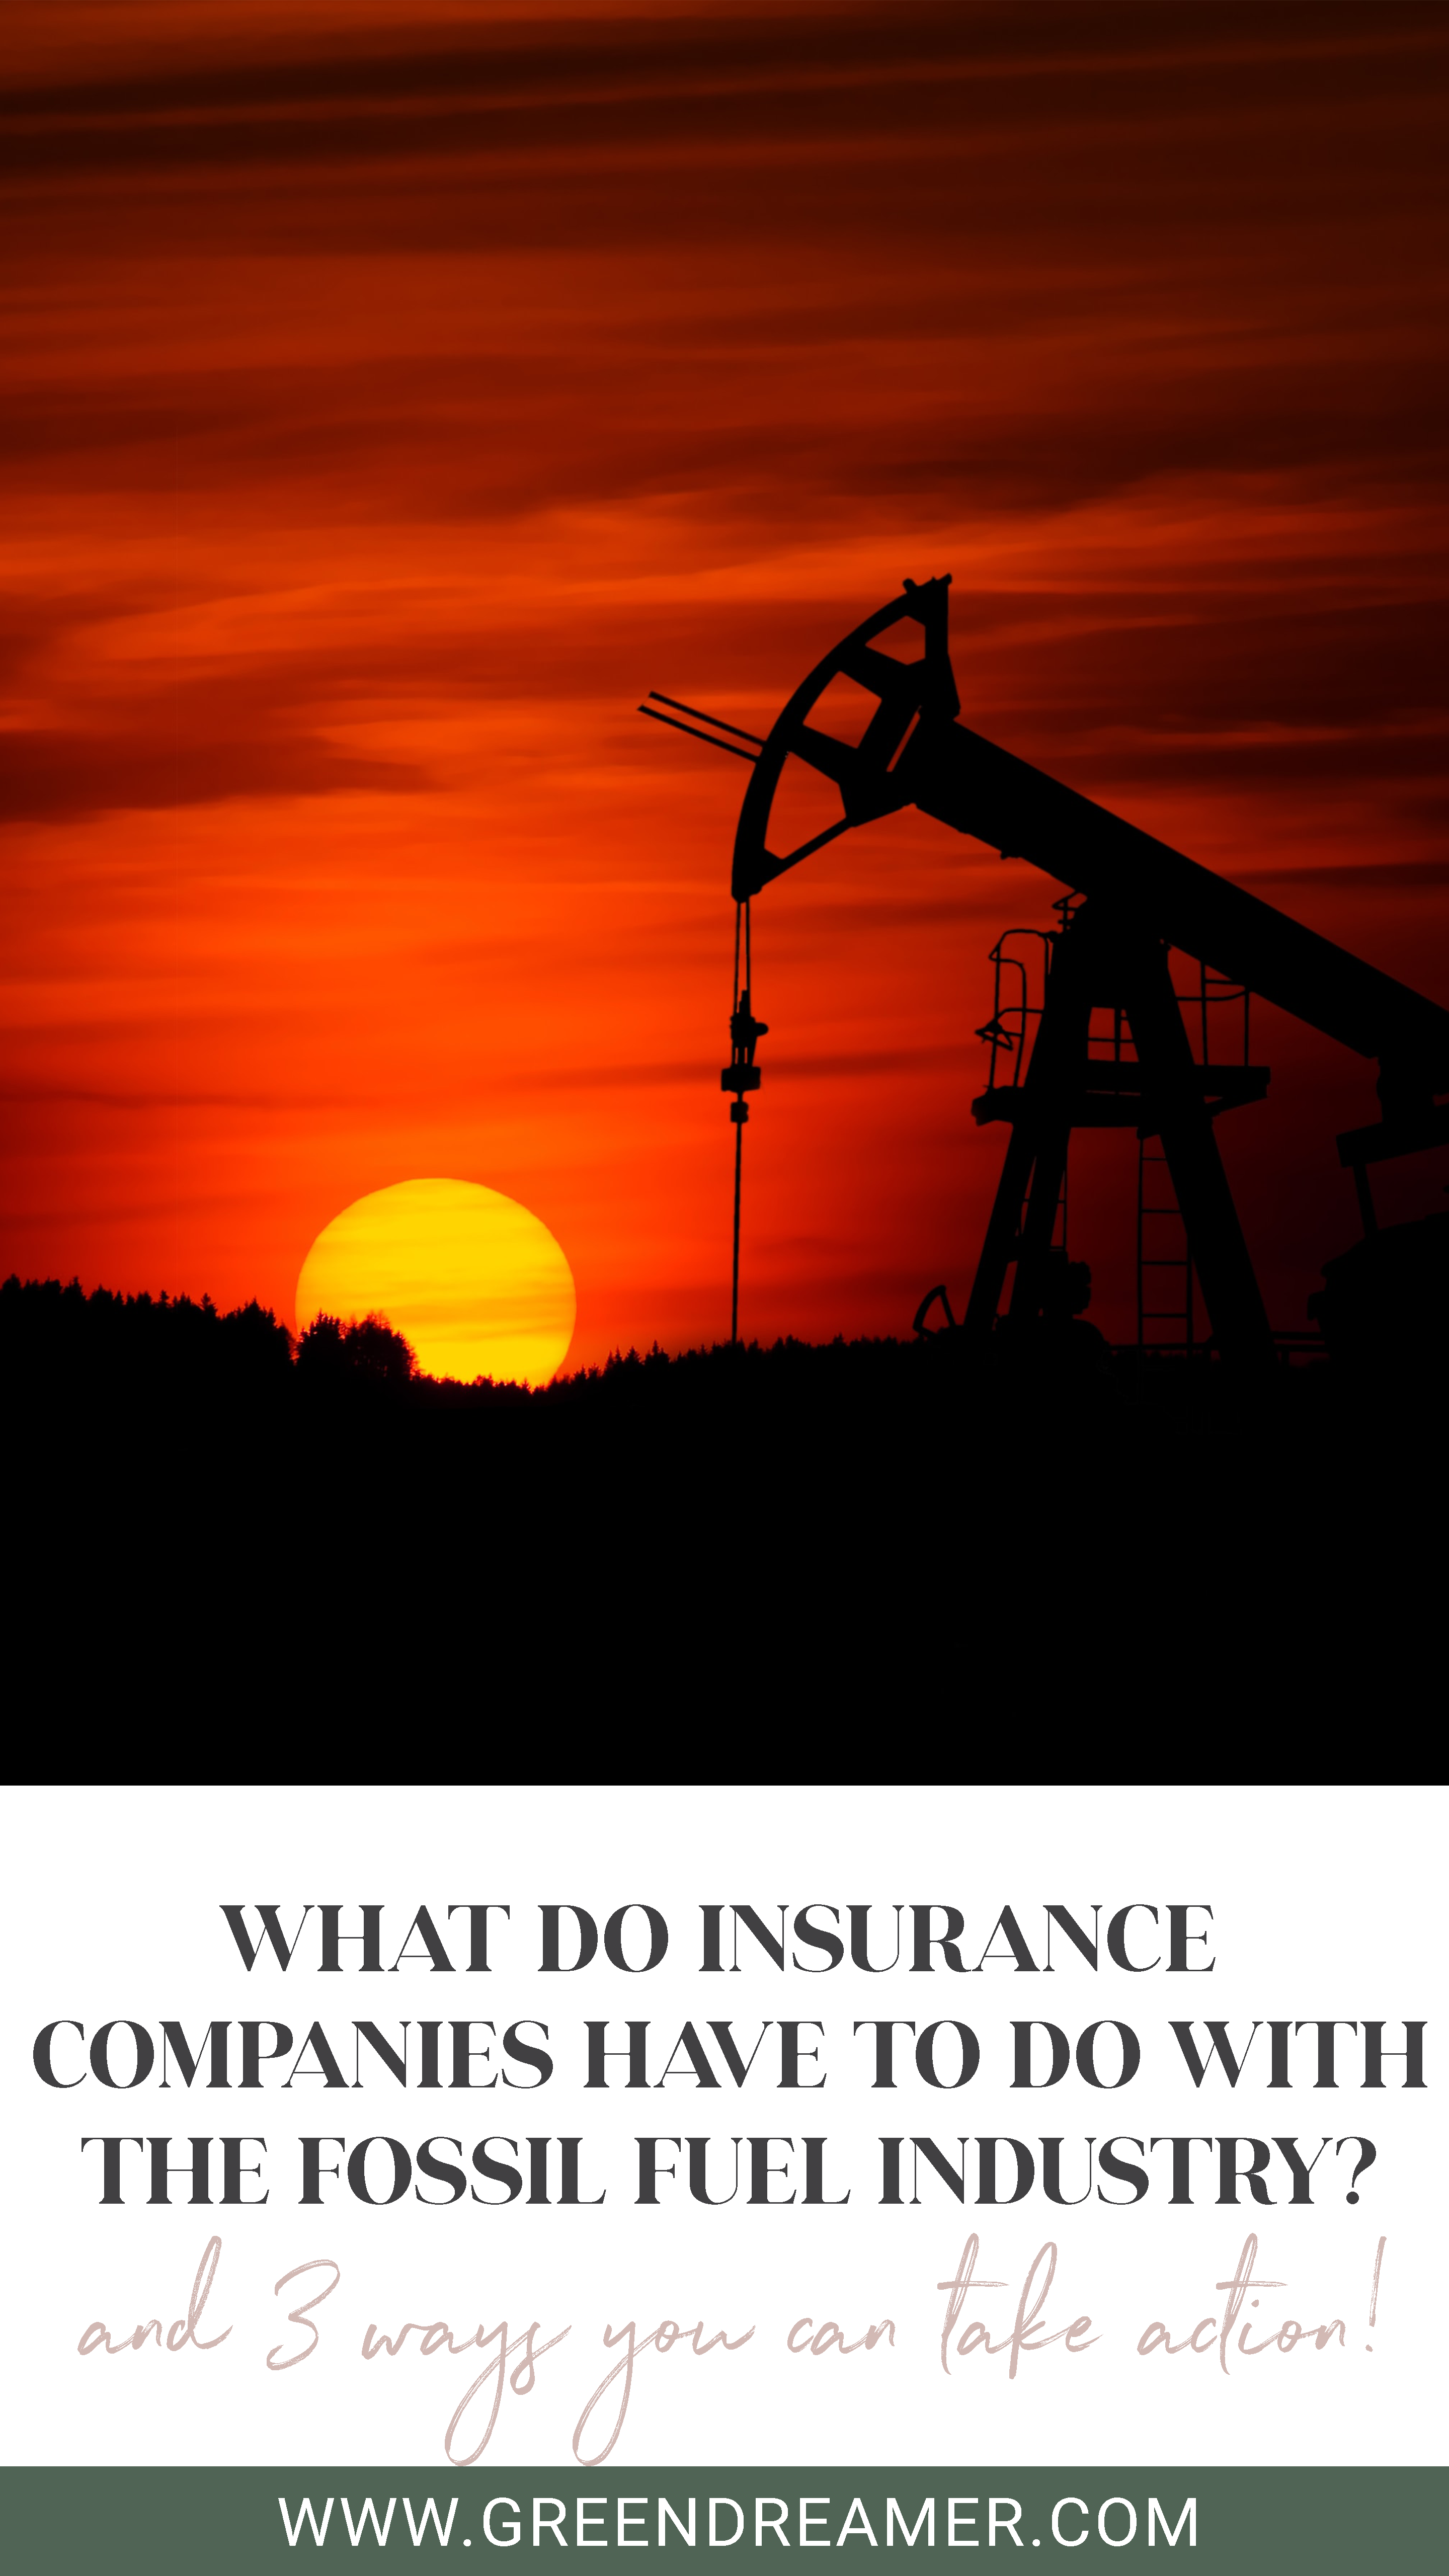 What Do Insurance Companies Have To Do With The Expansion Of The